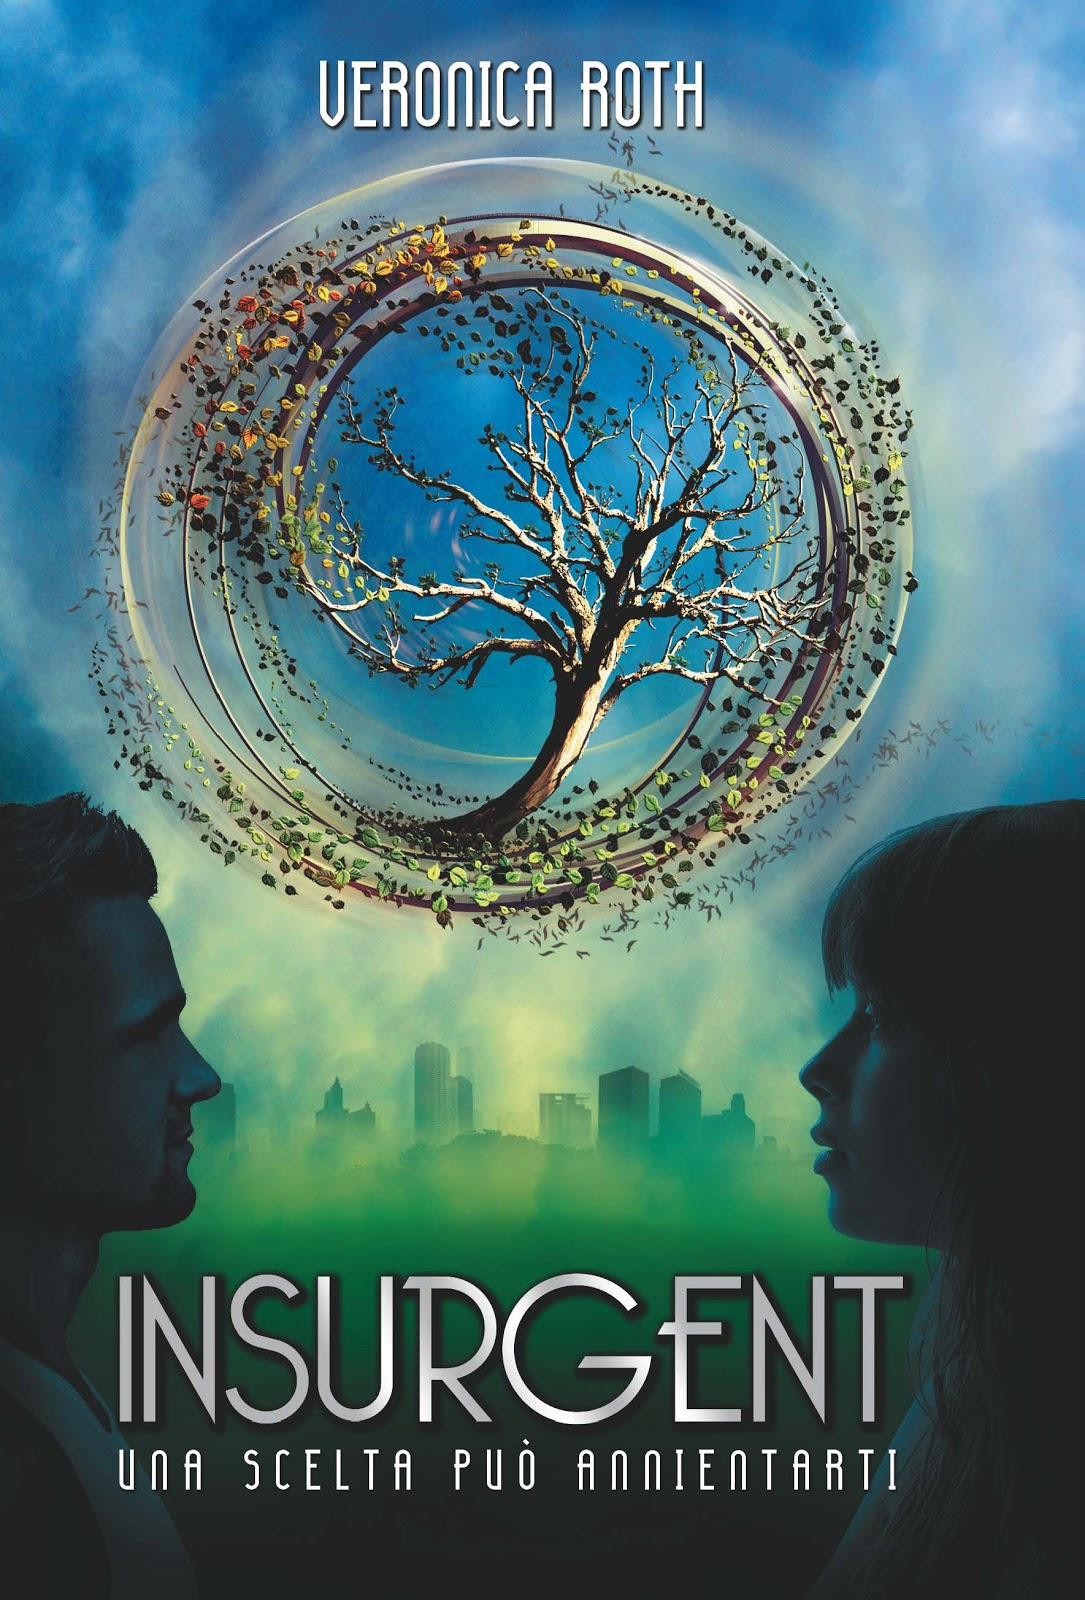 http://wonderfulmonsterbook.files.wordpress.com/2013/05/veronica-roth-insurgent-ita.jpg